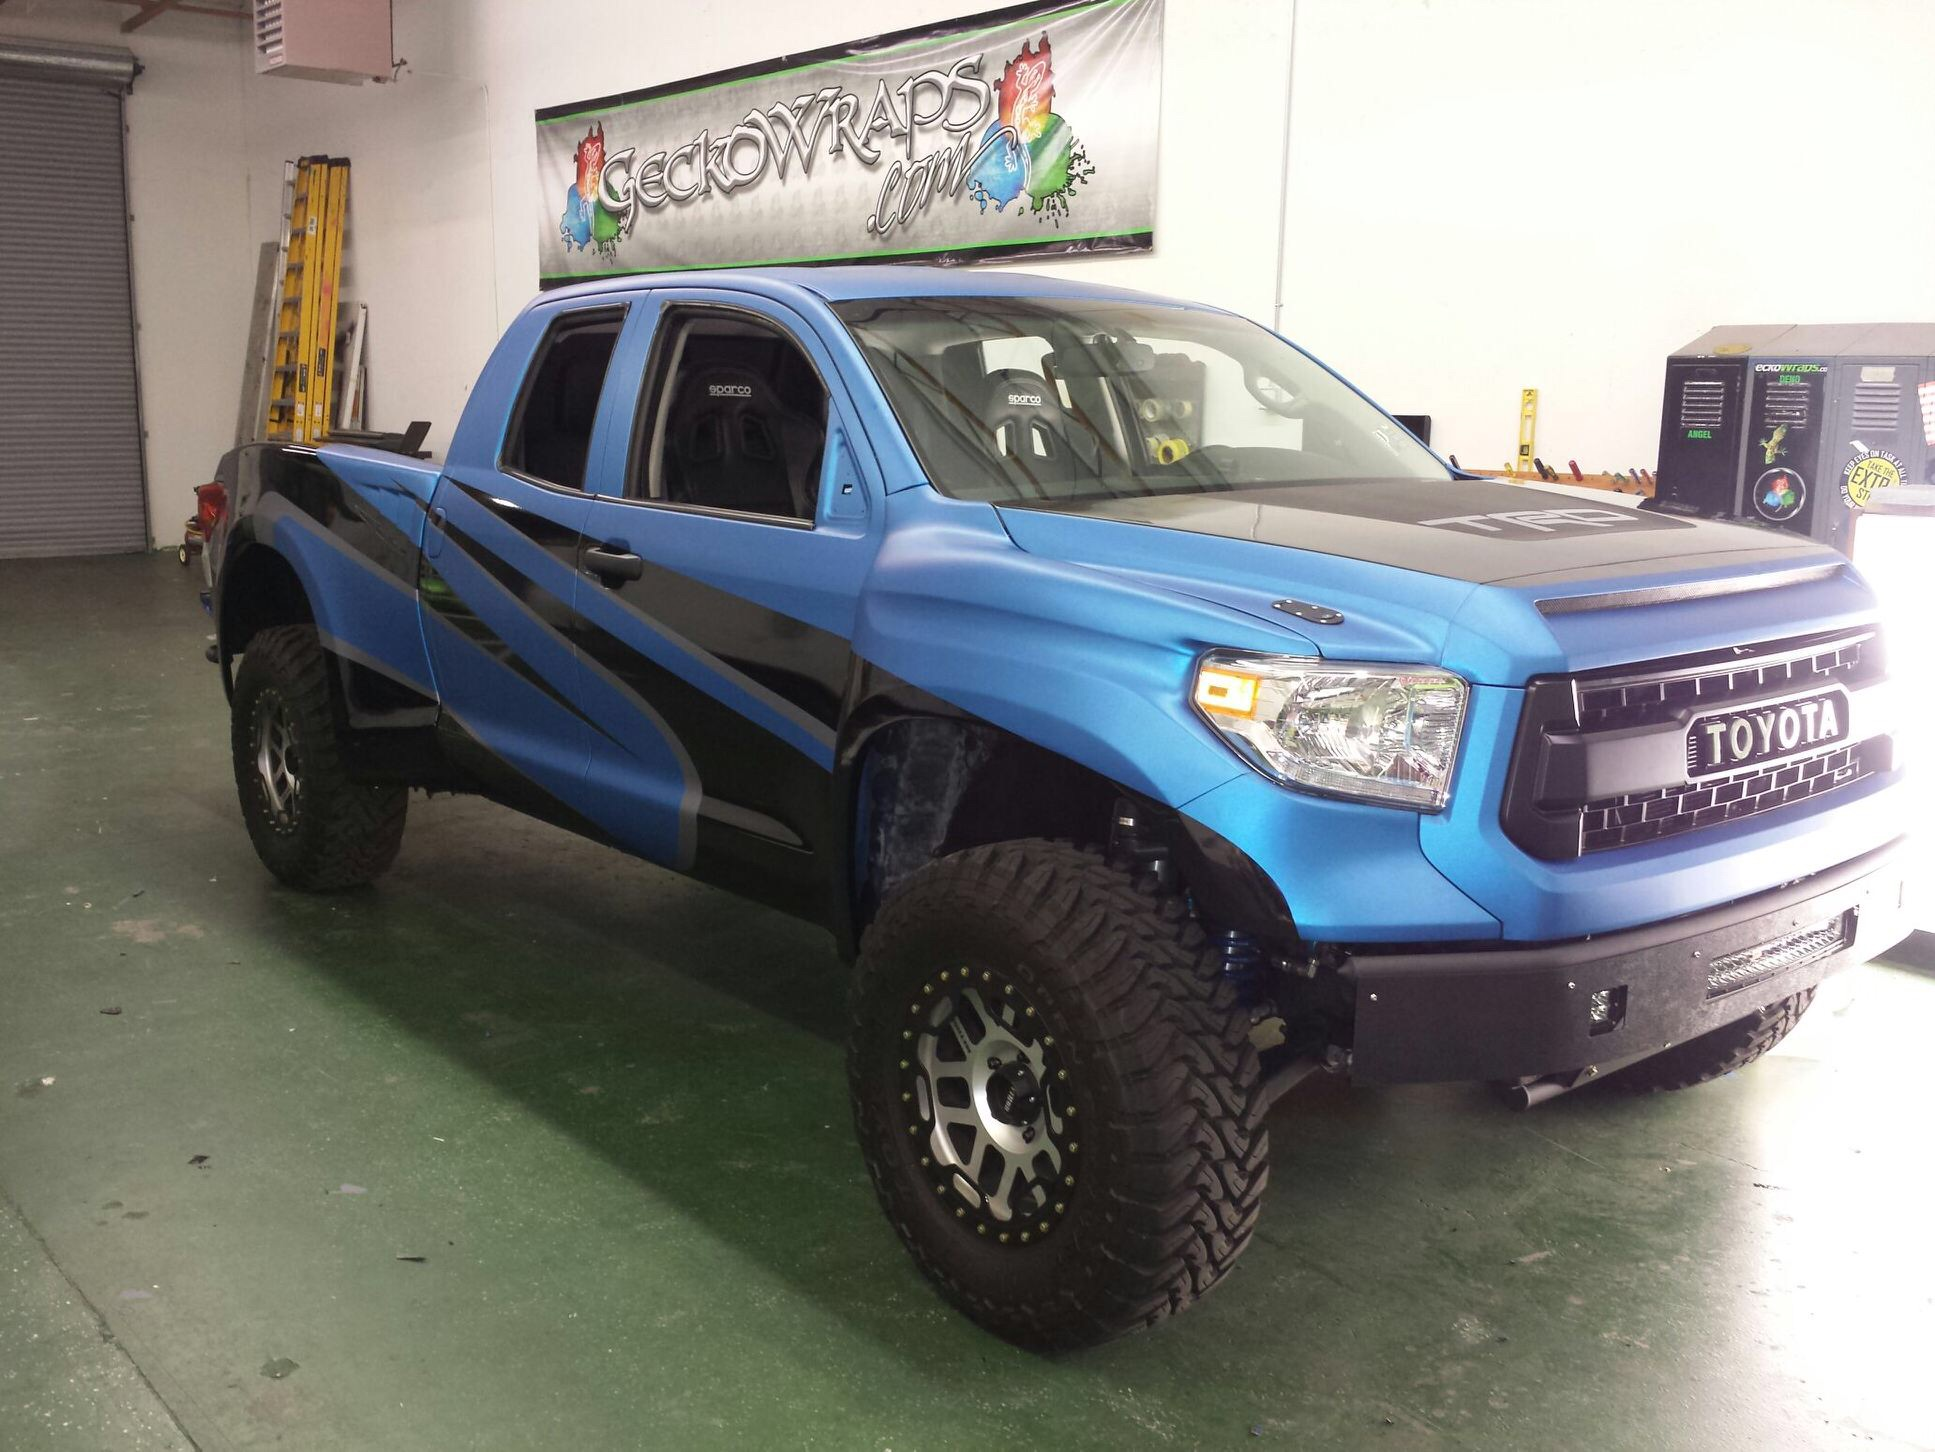 Geckowraps Truck Wrap Las Vegas Color Change Vehicle Wraps